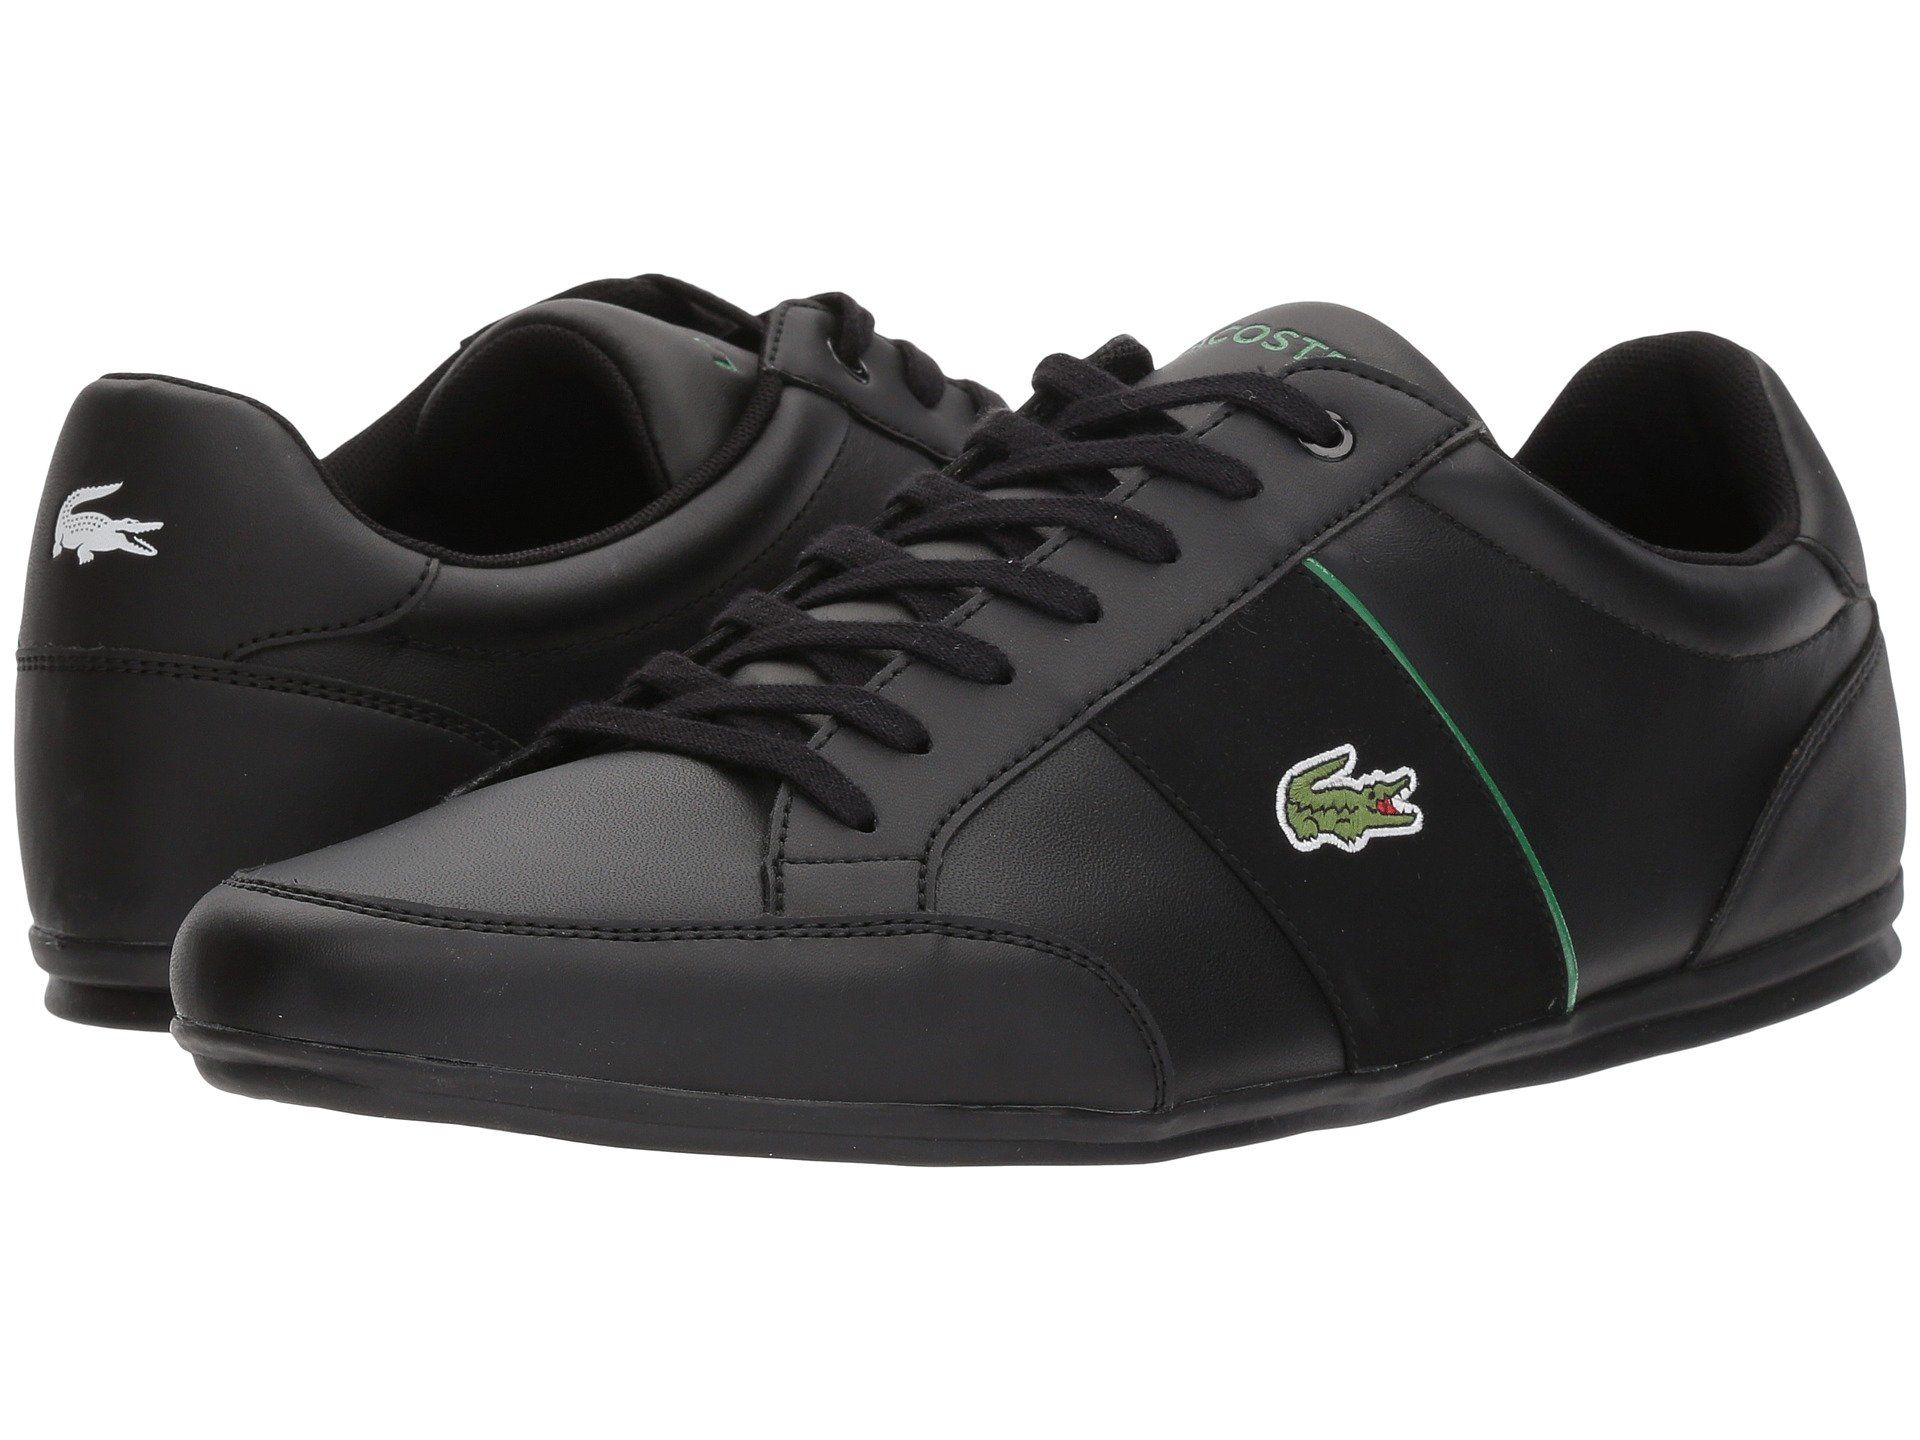 lacoste shoes vietnam made warships for sale